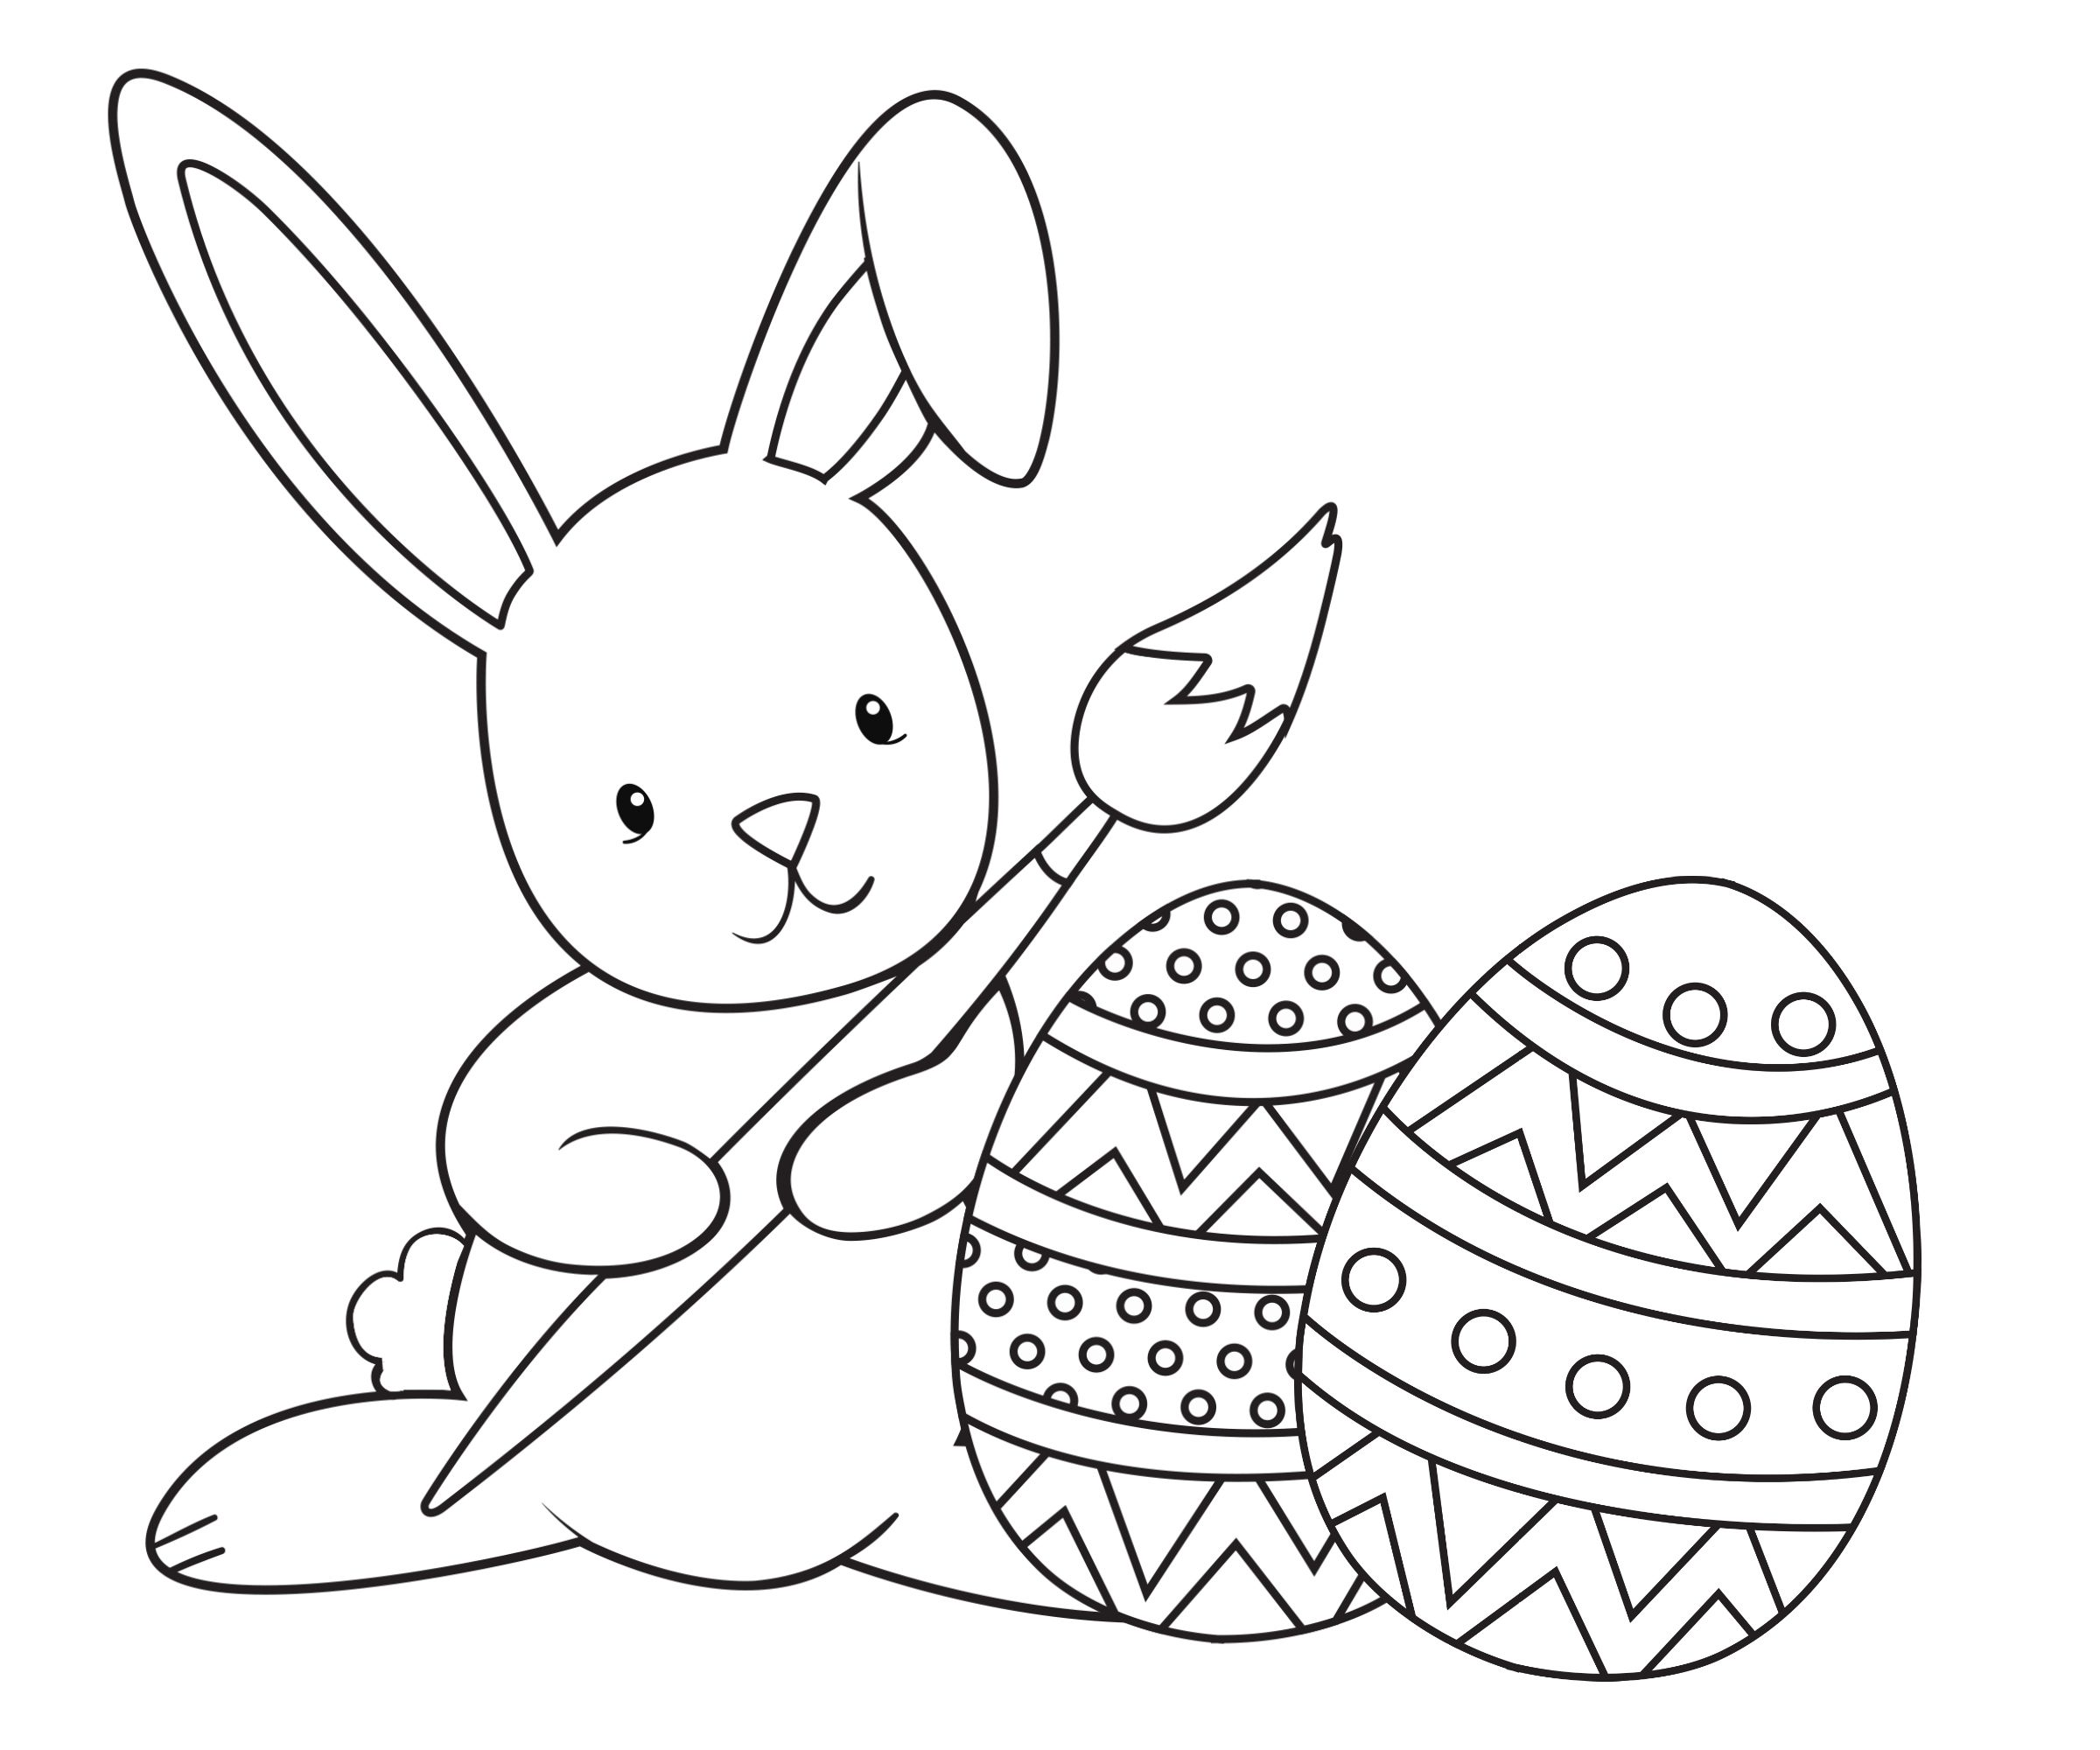 Easter Coloring Pages For Kids Bunny Coloring Pages Easter